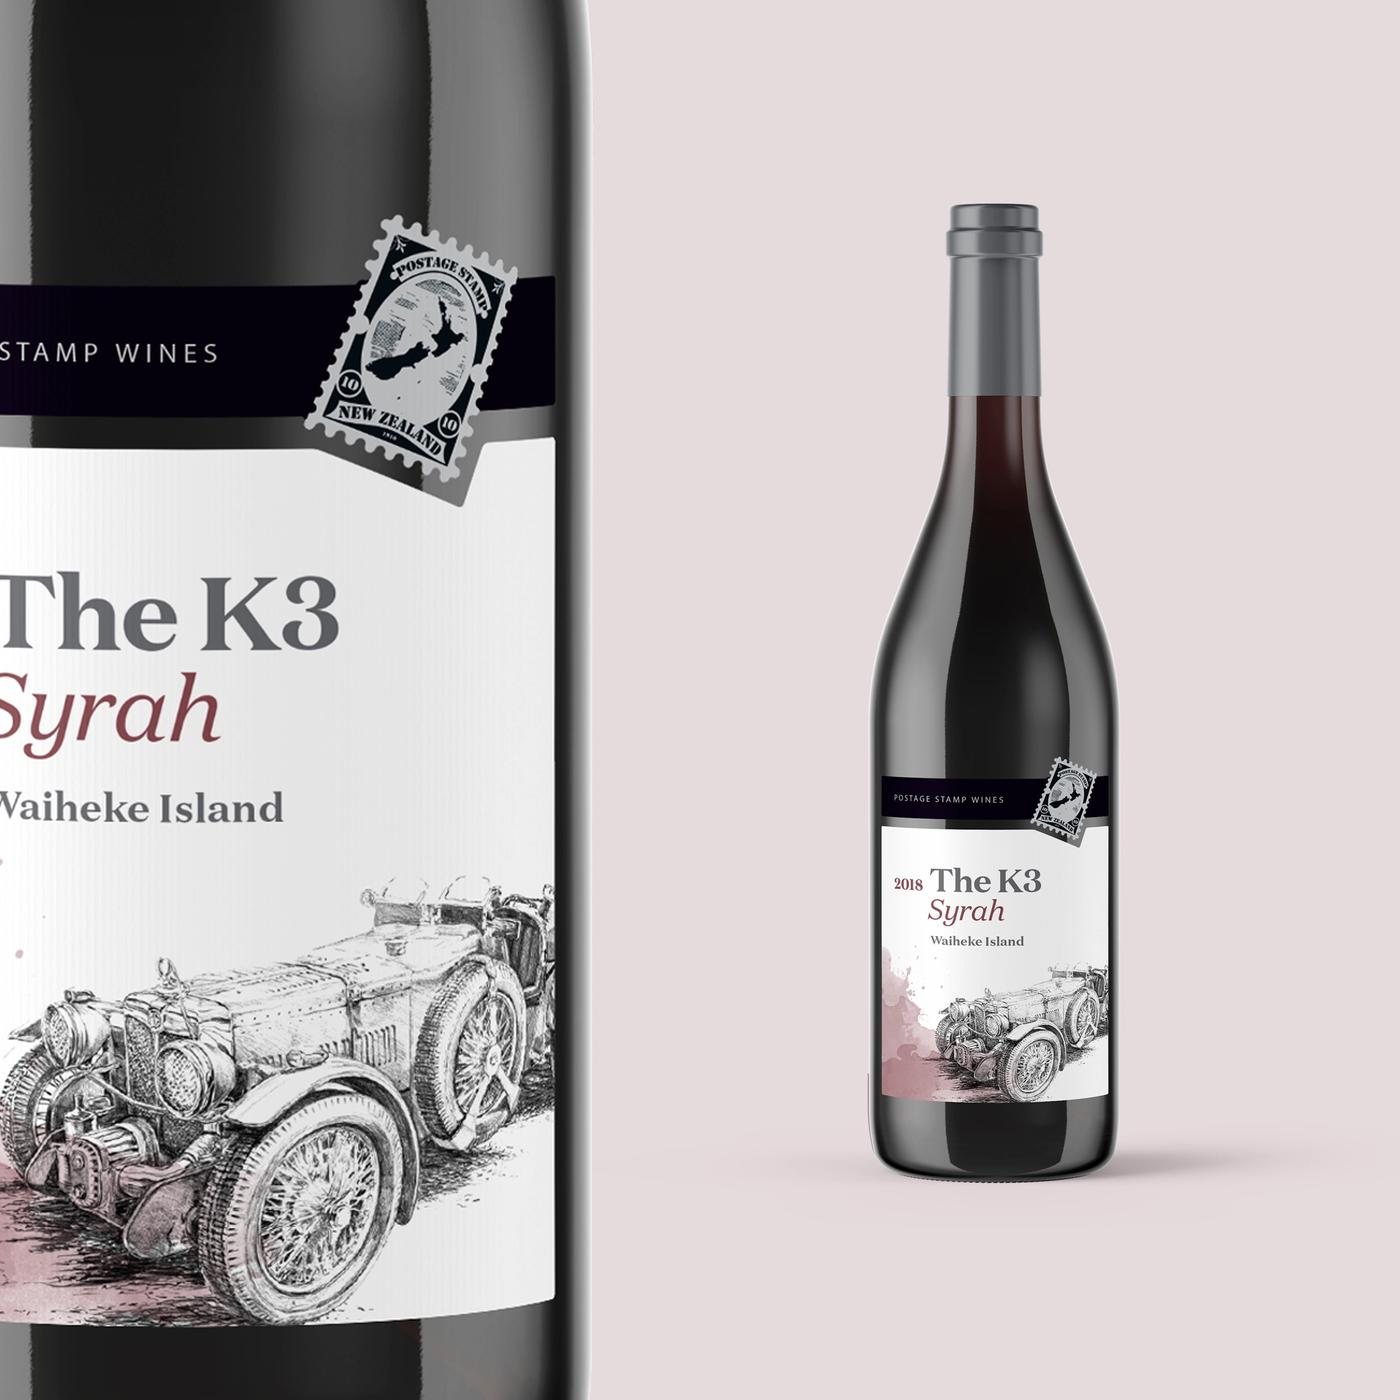 Postage stamp wines syrah label